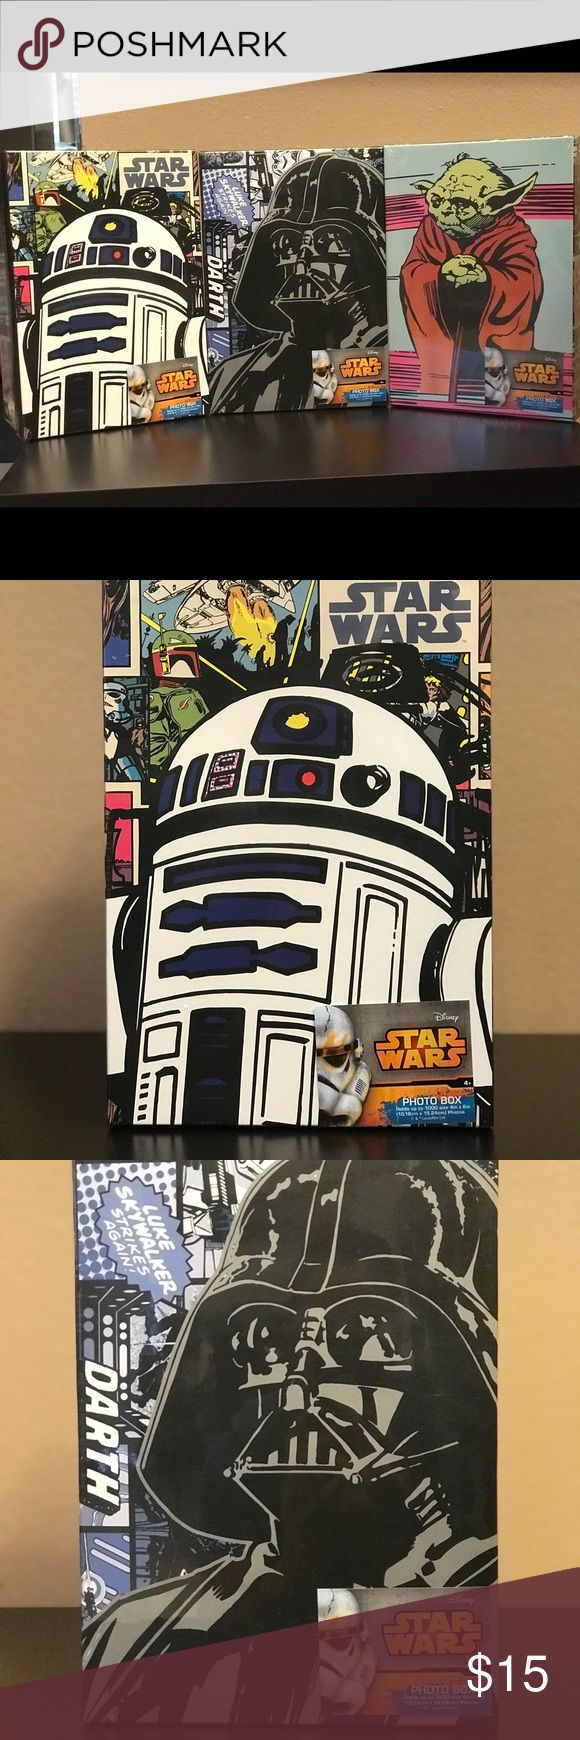 Set of 3 star wars photo storage box **New unopened box**  **Collector's Item**  Darth Vader Yoda  R2D2  $15 each $40 when bundle   This photo storage box features strong cardboard construction in a lightweight package. The amazing Star Wars graphic art covers the top and all 4 sides making this a bold and fun decorative addition to any room. The product can be used to store almost anything including up to 1000 size 4 inch x 6 inch photos. Other